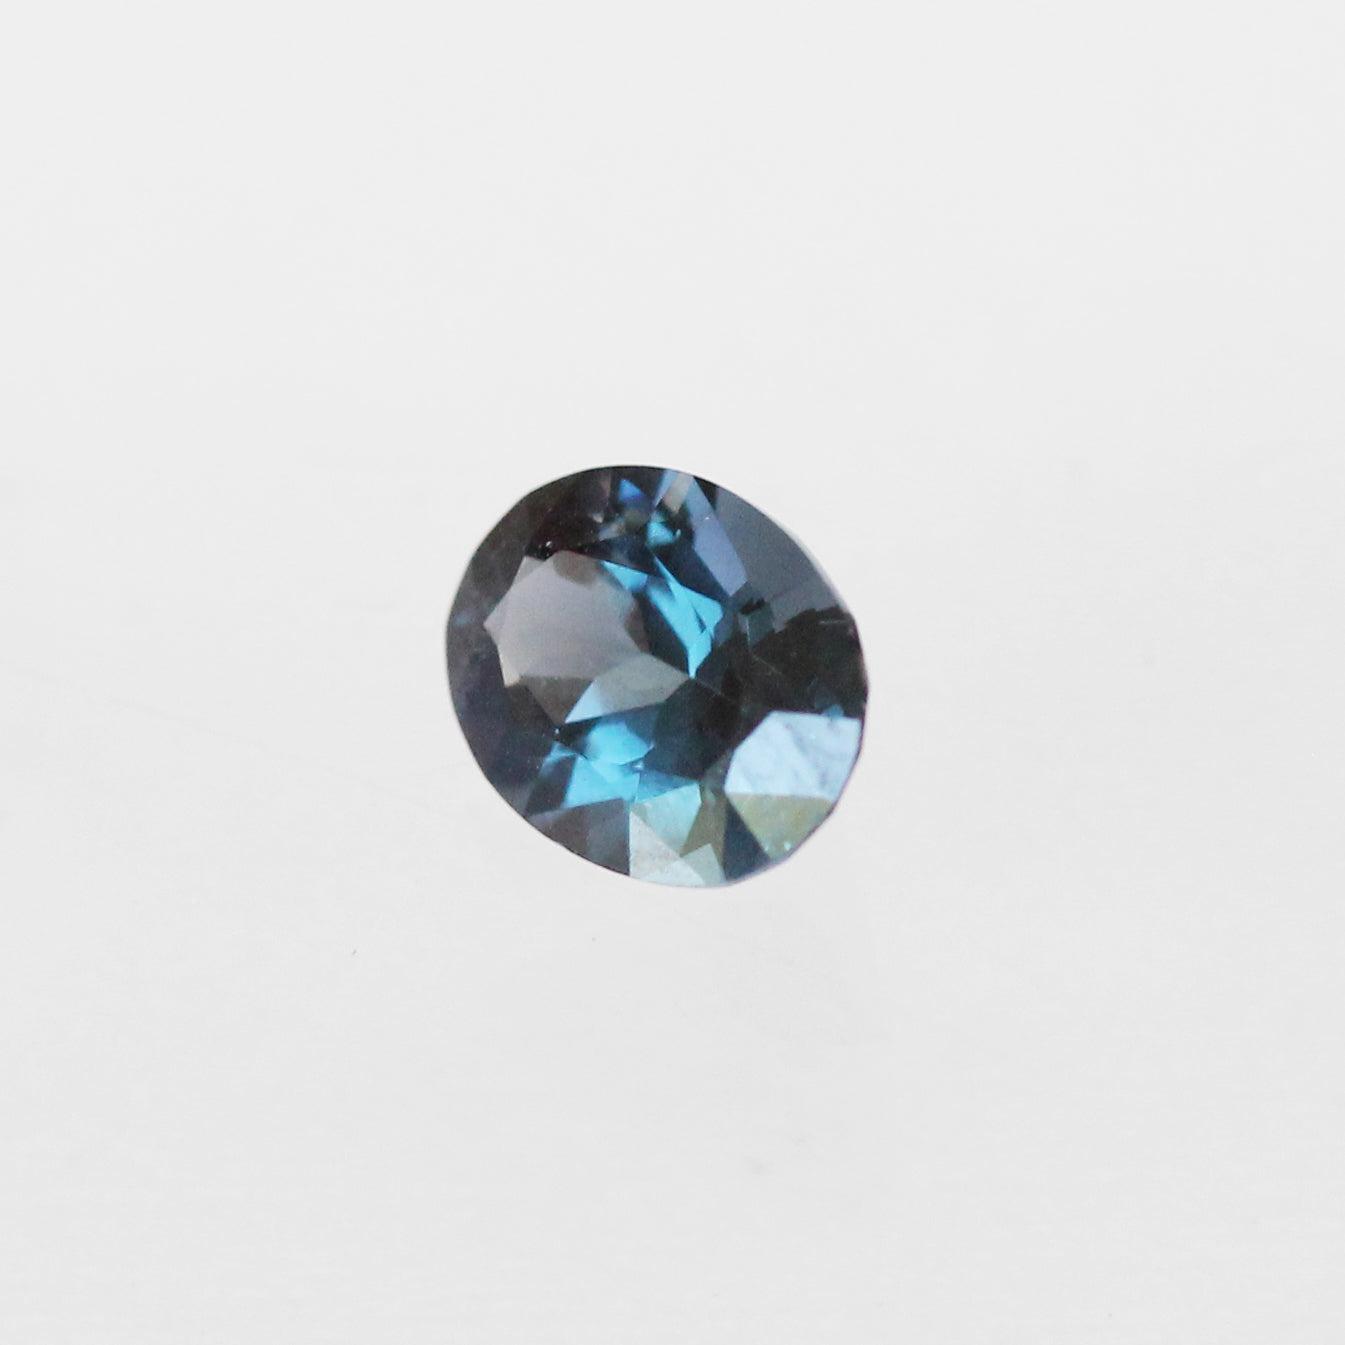 .66 Carat Oval Spinel for Custom Work - Inventory Code OSP66 - Celestial Diamonds ® by Midwinter Co.